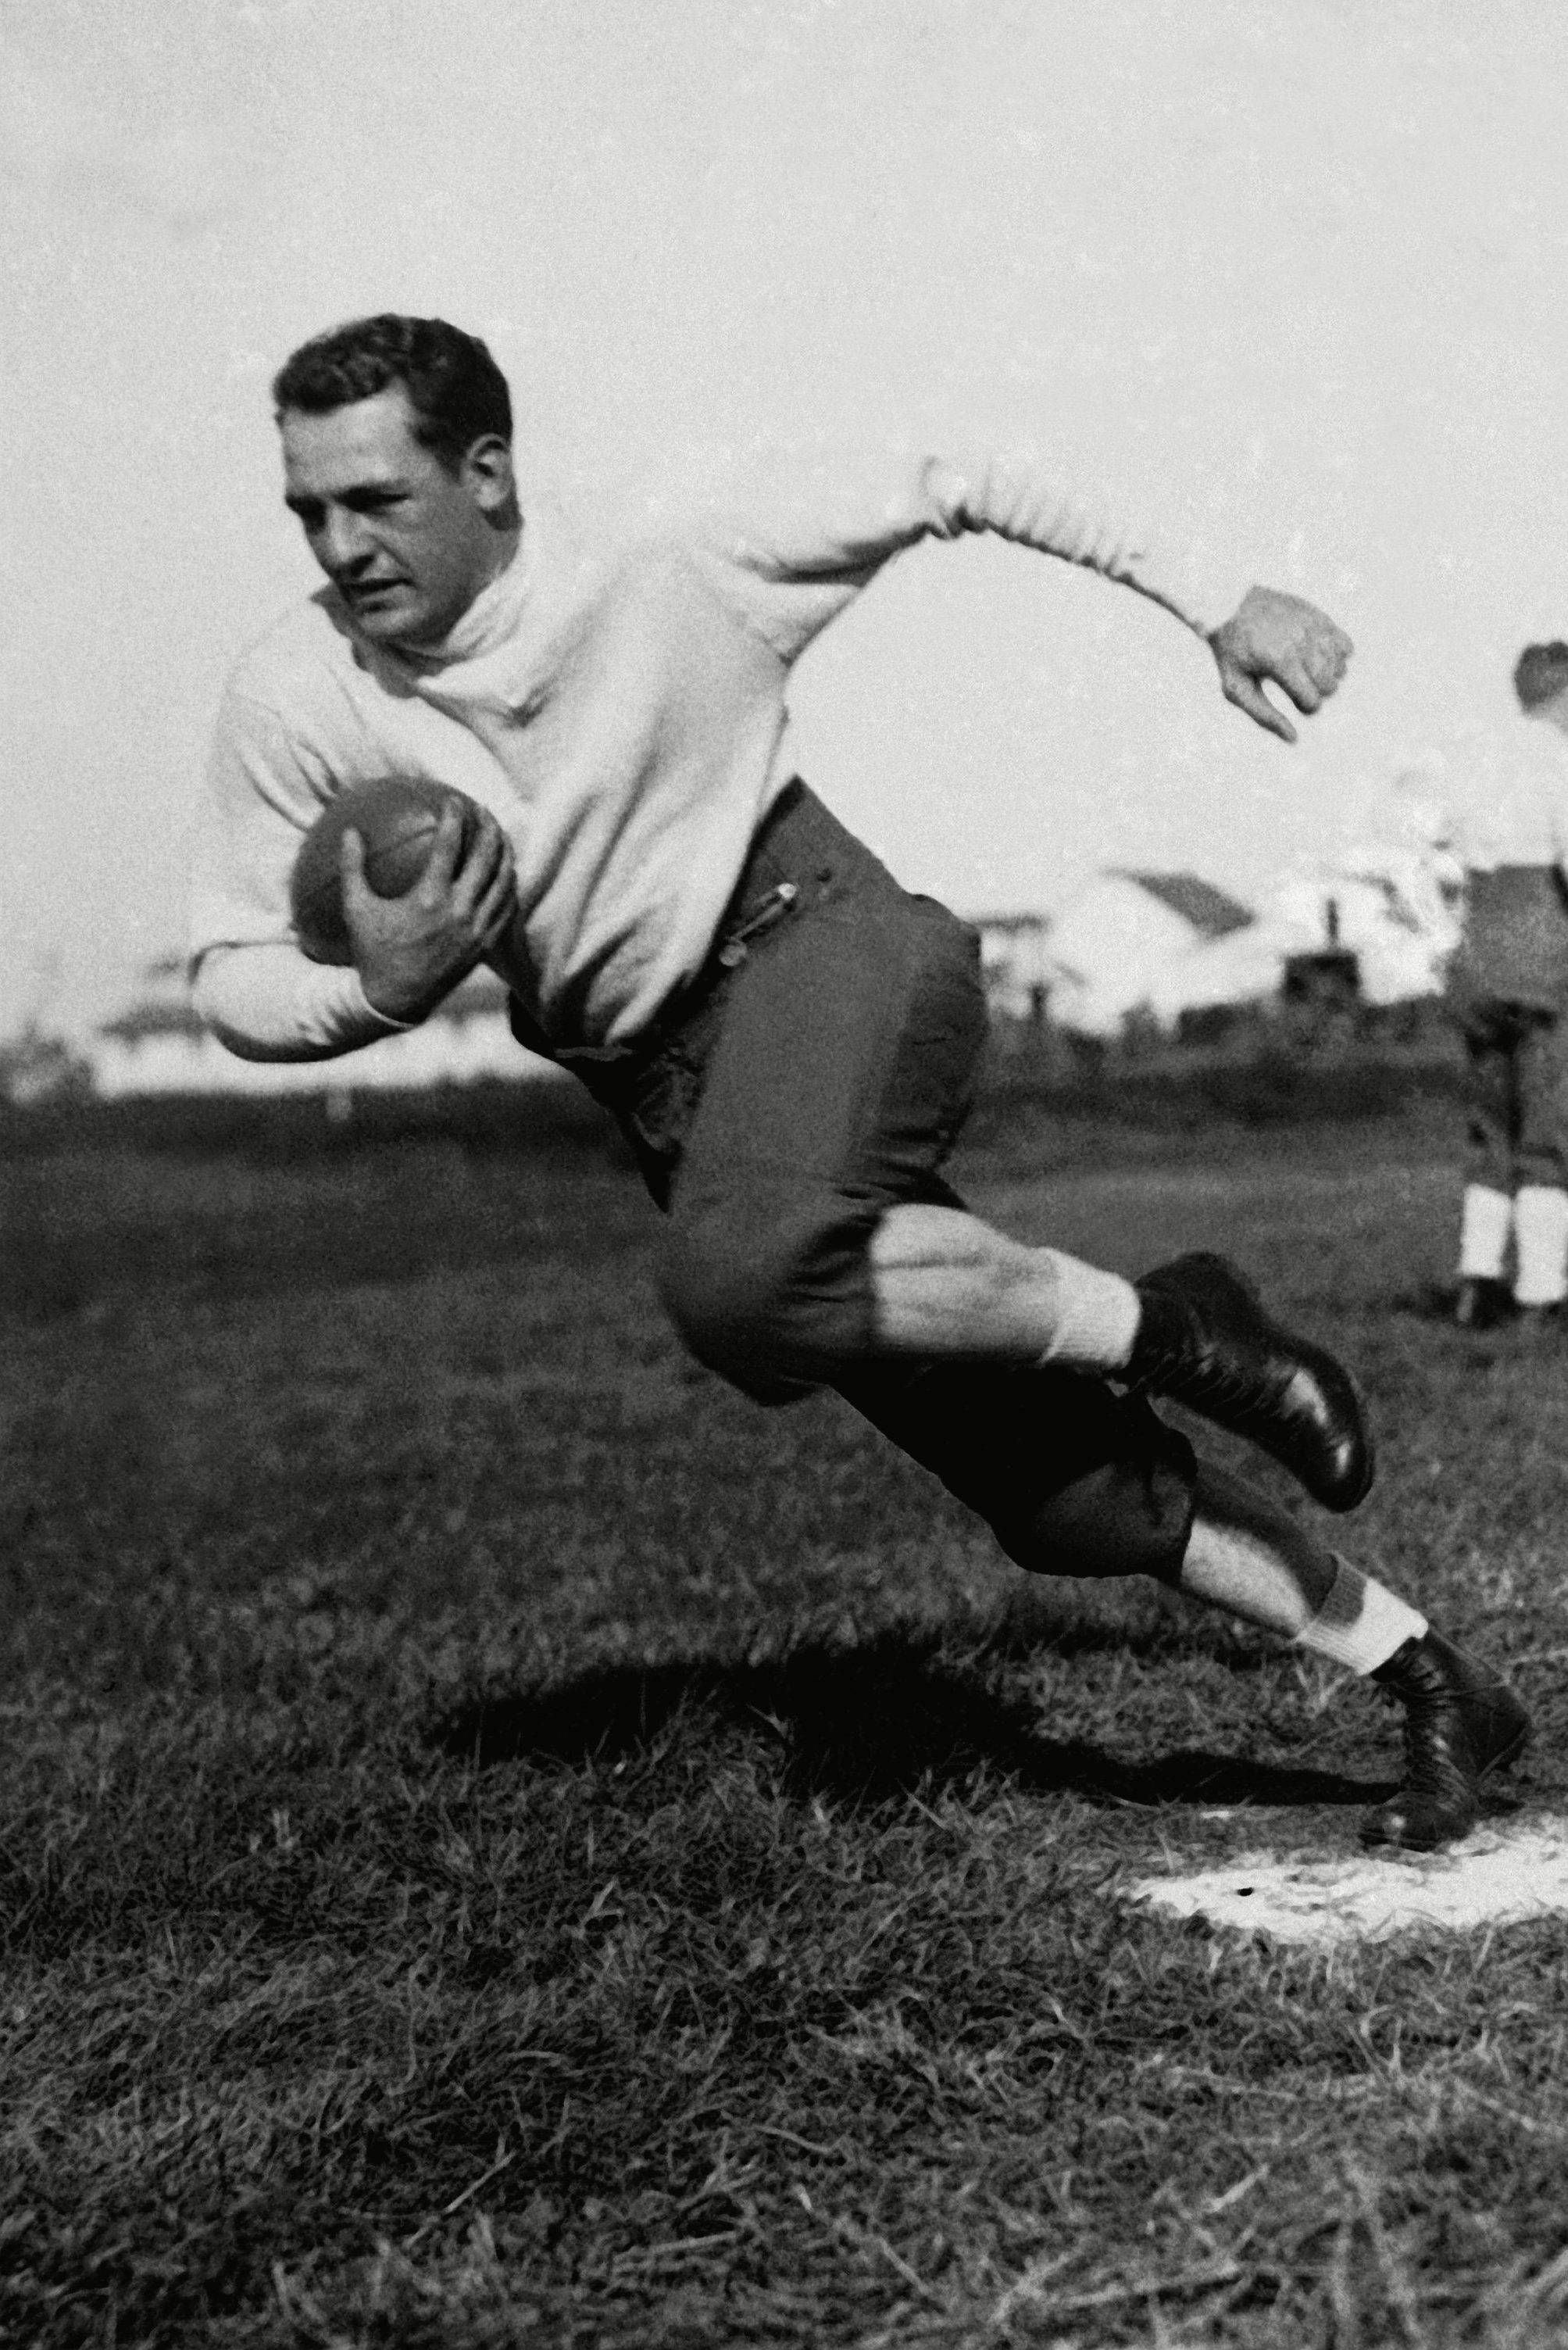 """Mandatory Credit: Photo by AP/Shutterstock (6661645a) Chicago Bears halfback Harold Edward """"Red"""" Grange practicing one of the famous twisting turns at the training quarters Grange Bears Football, USA"""